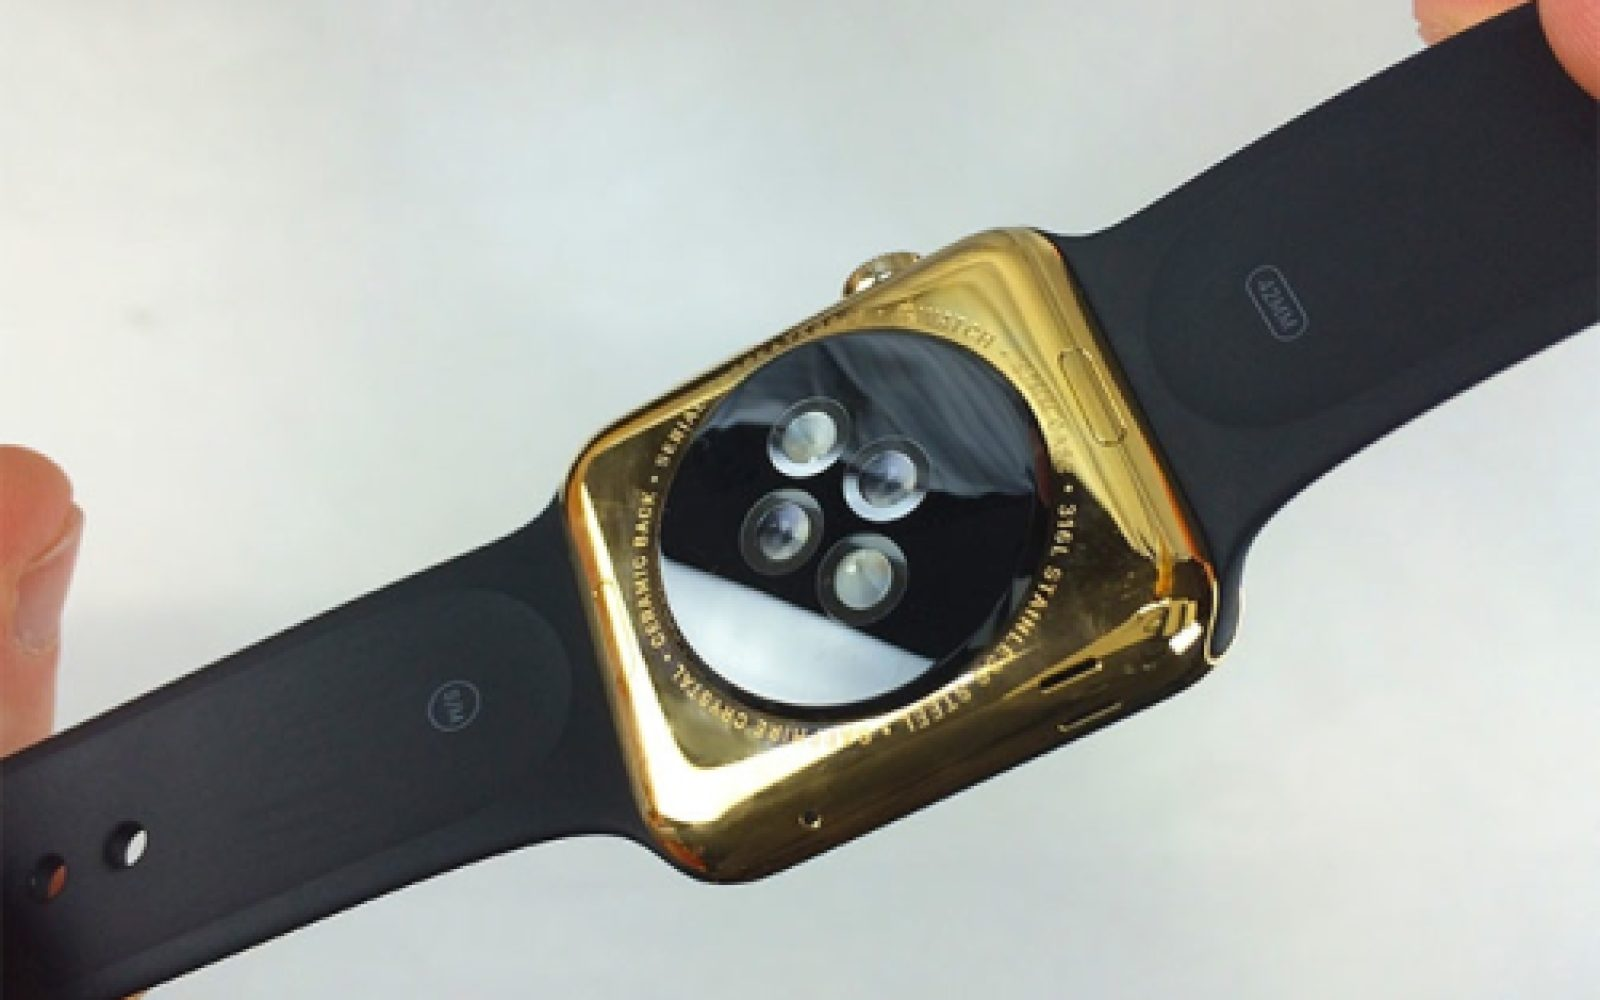 $100 kit lets you plate Apple Watch with 24K gold DIY-style